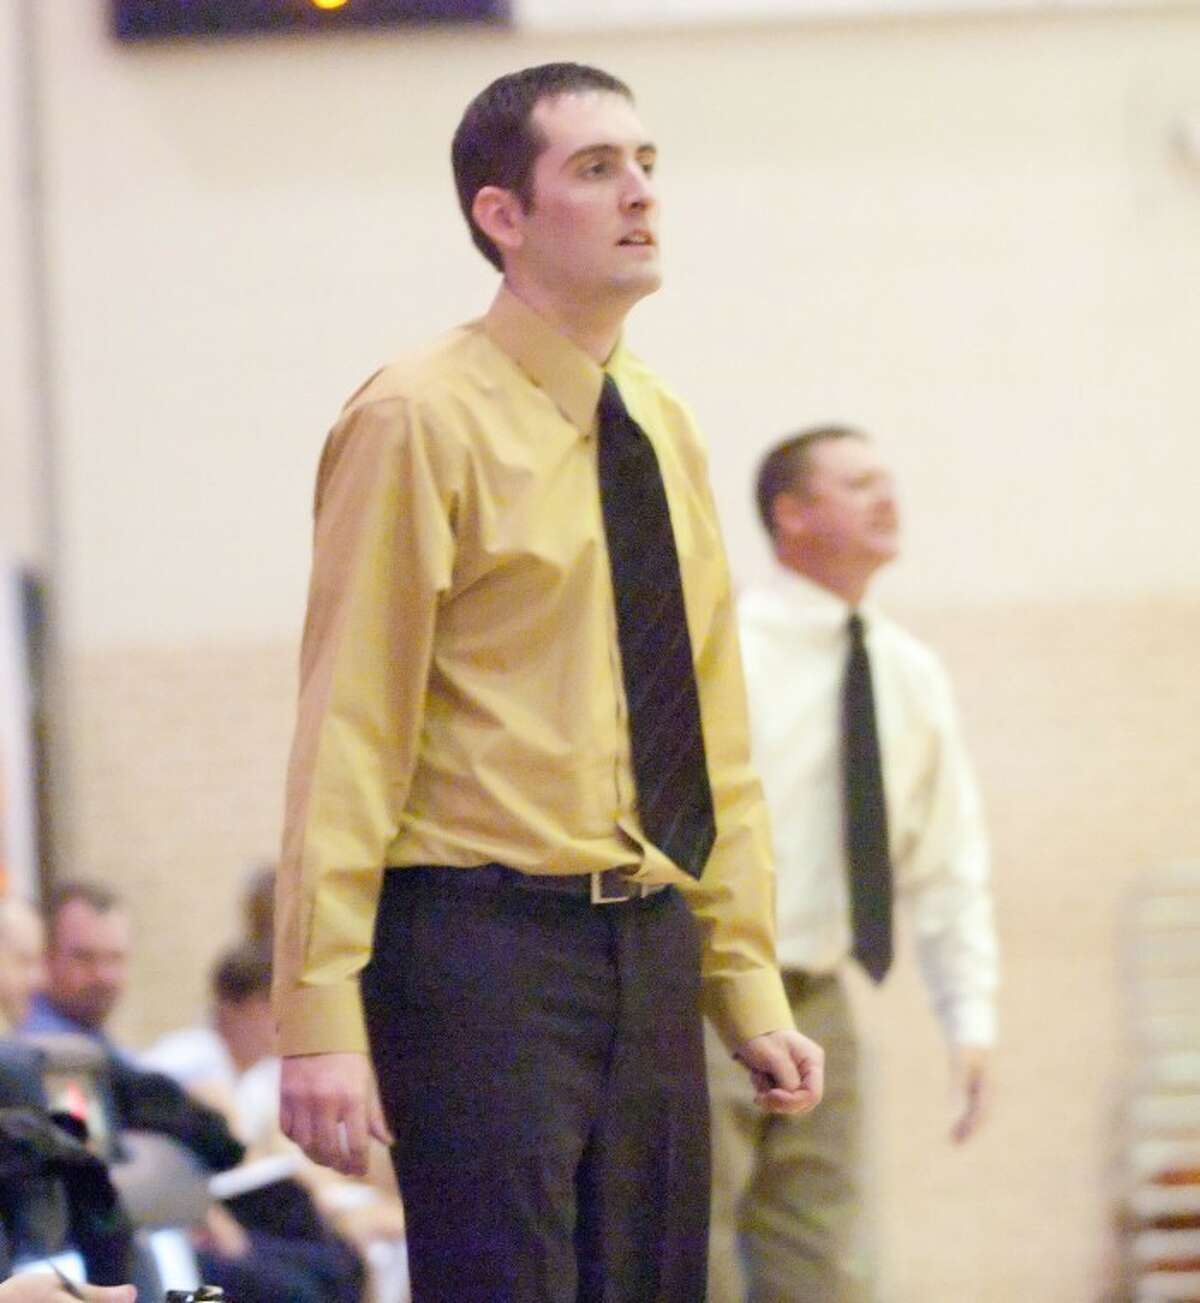 Greenwood coach Cliff Thompson confirmed his resignation on Monday night, citing he and his having trouble finding affordable housing in Midland.